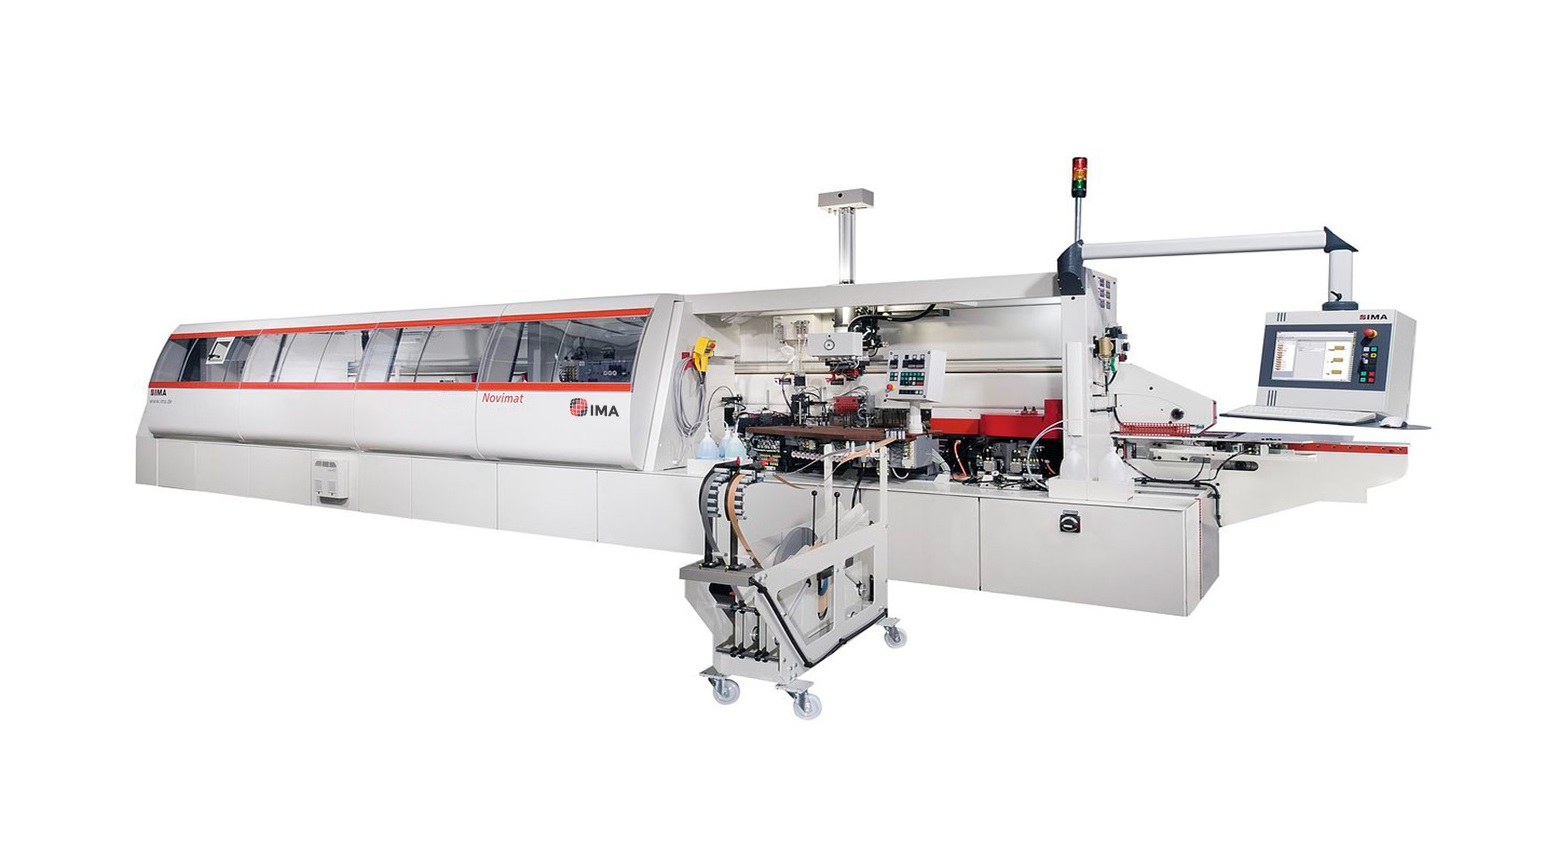 IMA Novimat Edgebanding machine